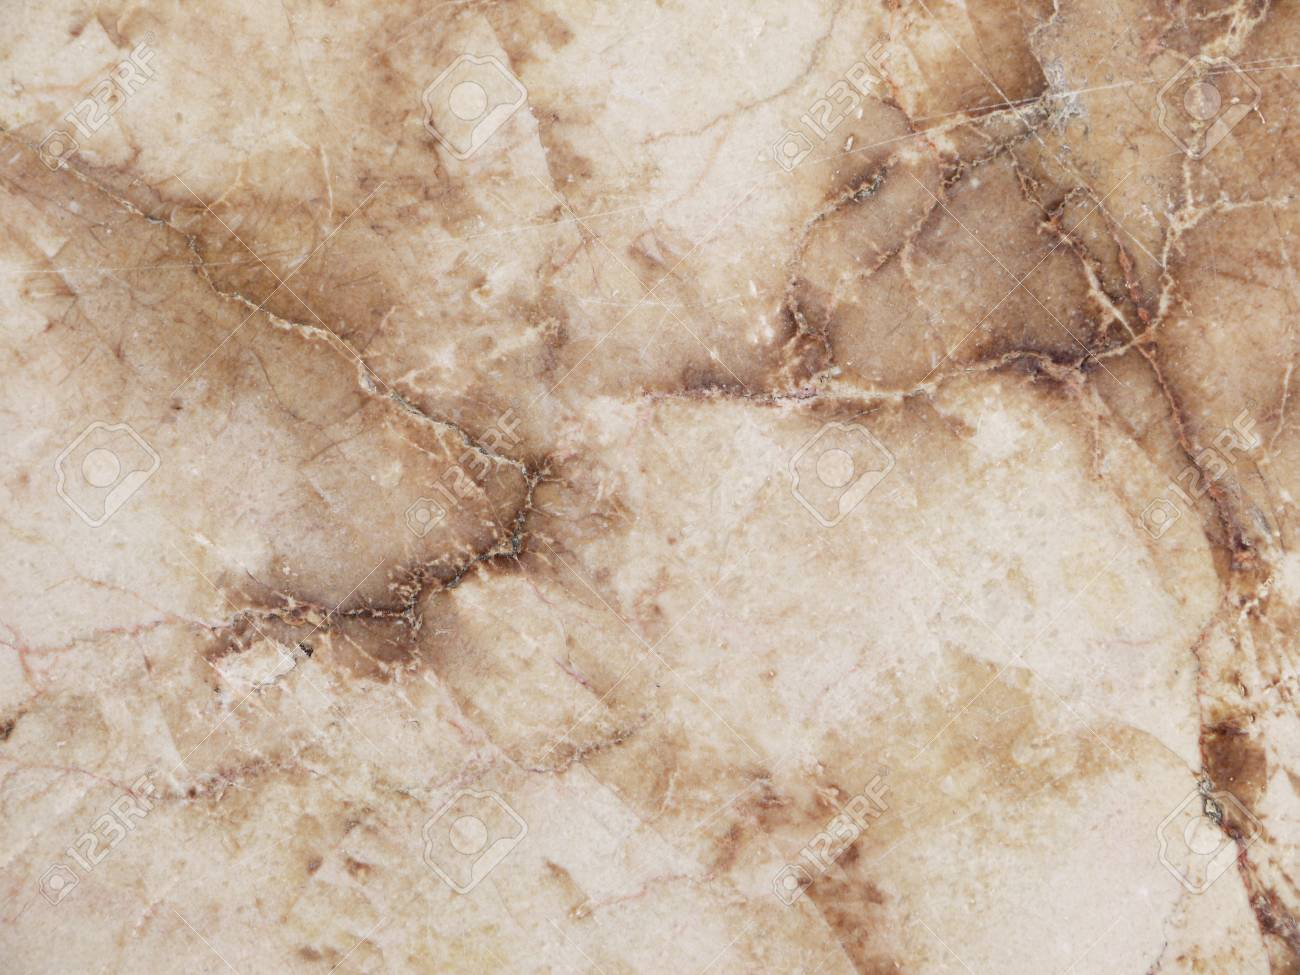 Brown Marble Texture Background High Resolution Scan Stock Photo Picture And Royalty Free Image Image 48981490